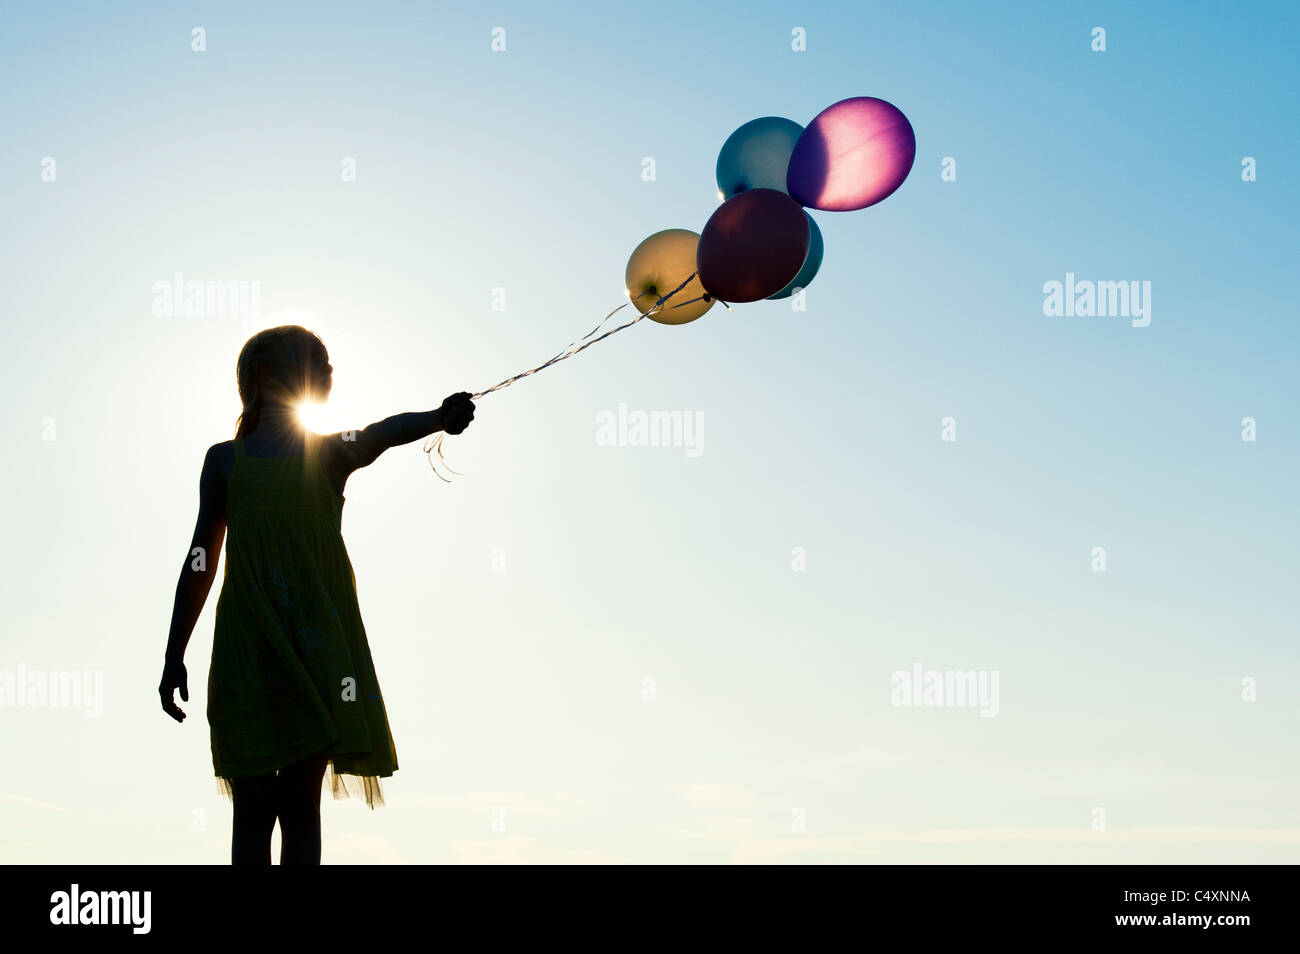 Silhouette of a young girl holding coloured balloons at sunset Stock Photo